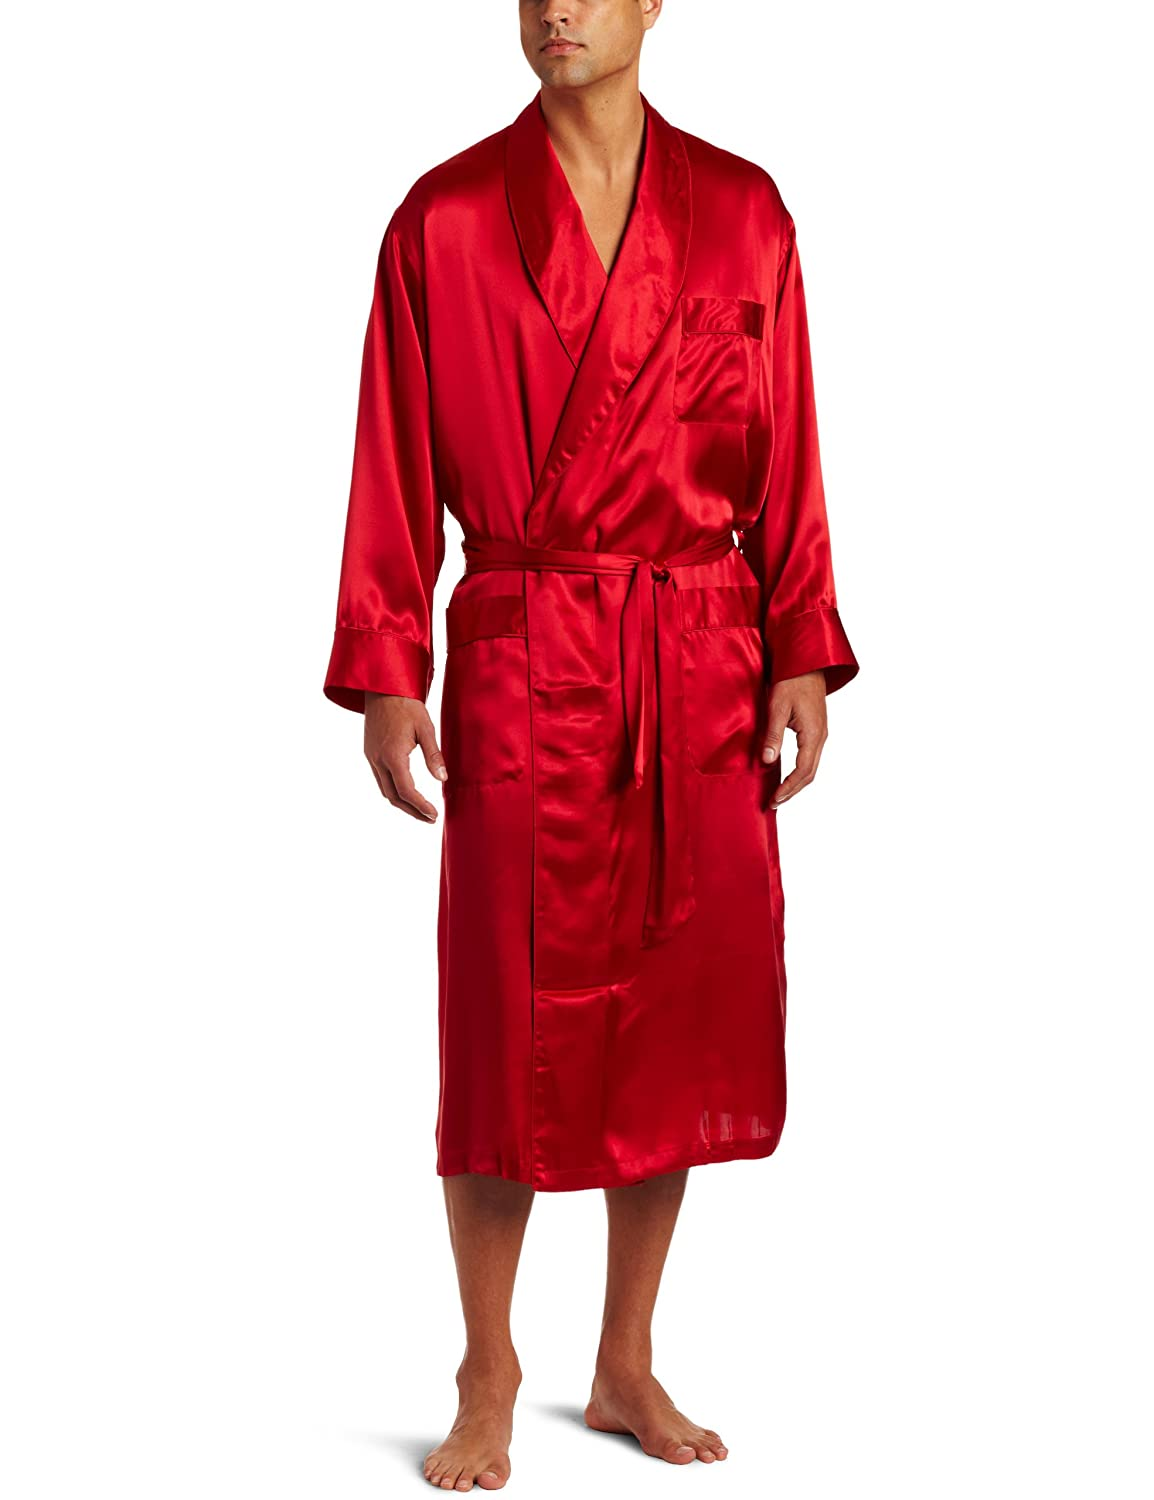 Intimo Men's Sleepwear Classic Silk Robe m501006